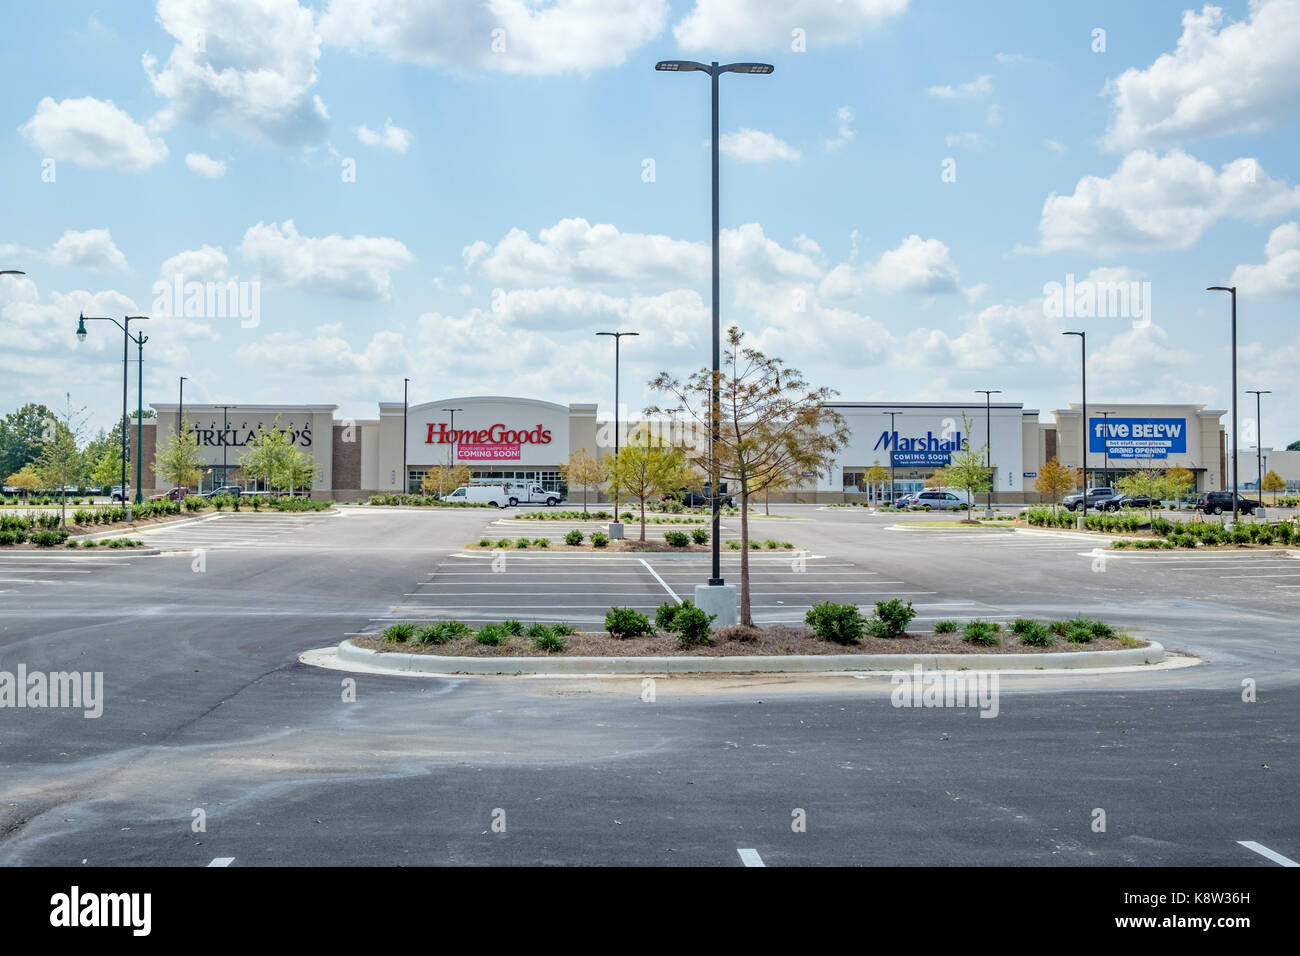 A New Shopping Center In The Eastchase Area Of Montgomery Alabama Usa Indicating An Expanding Local Economy Opening Four New Stores